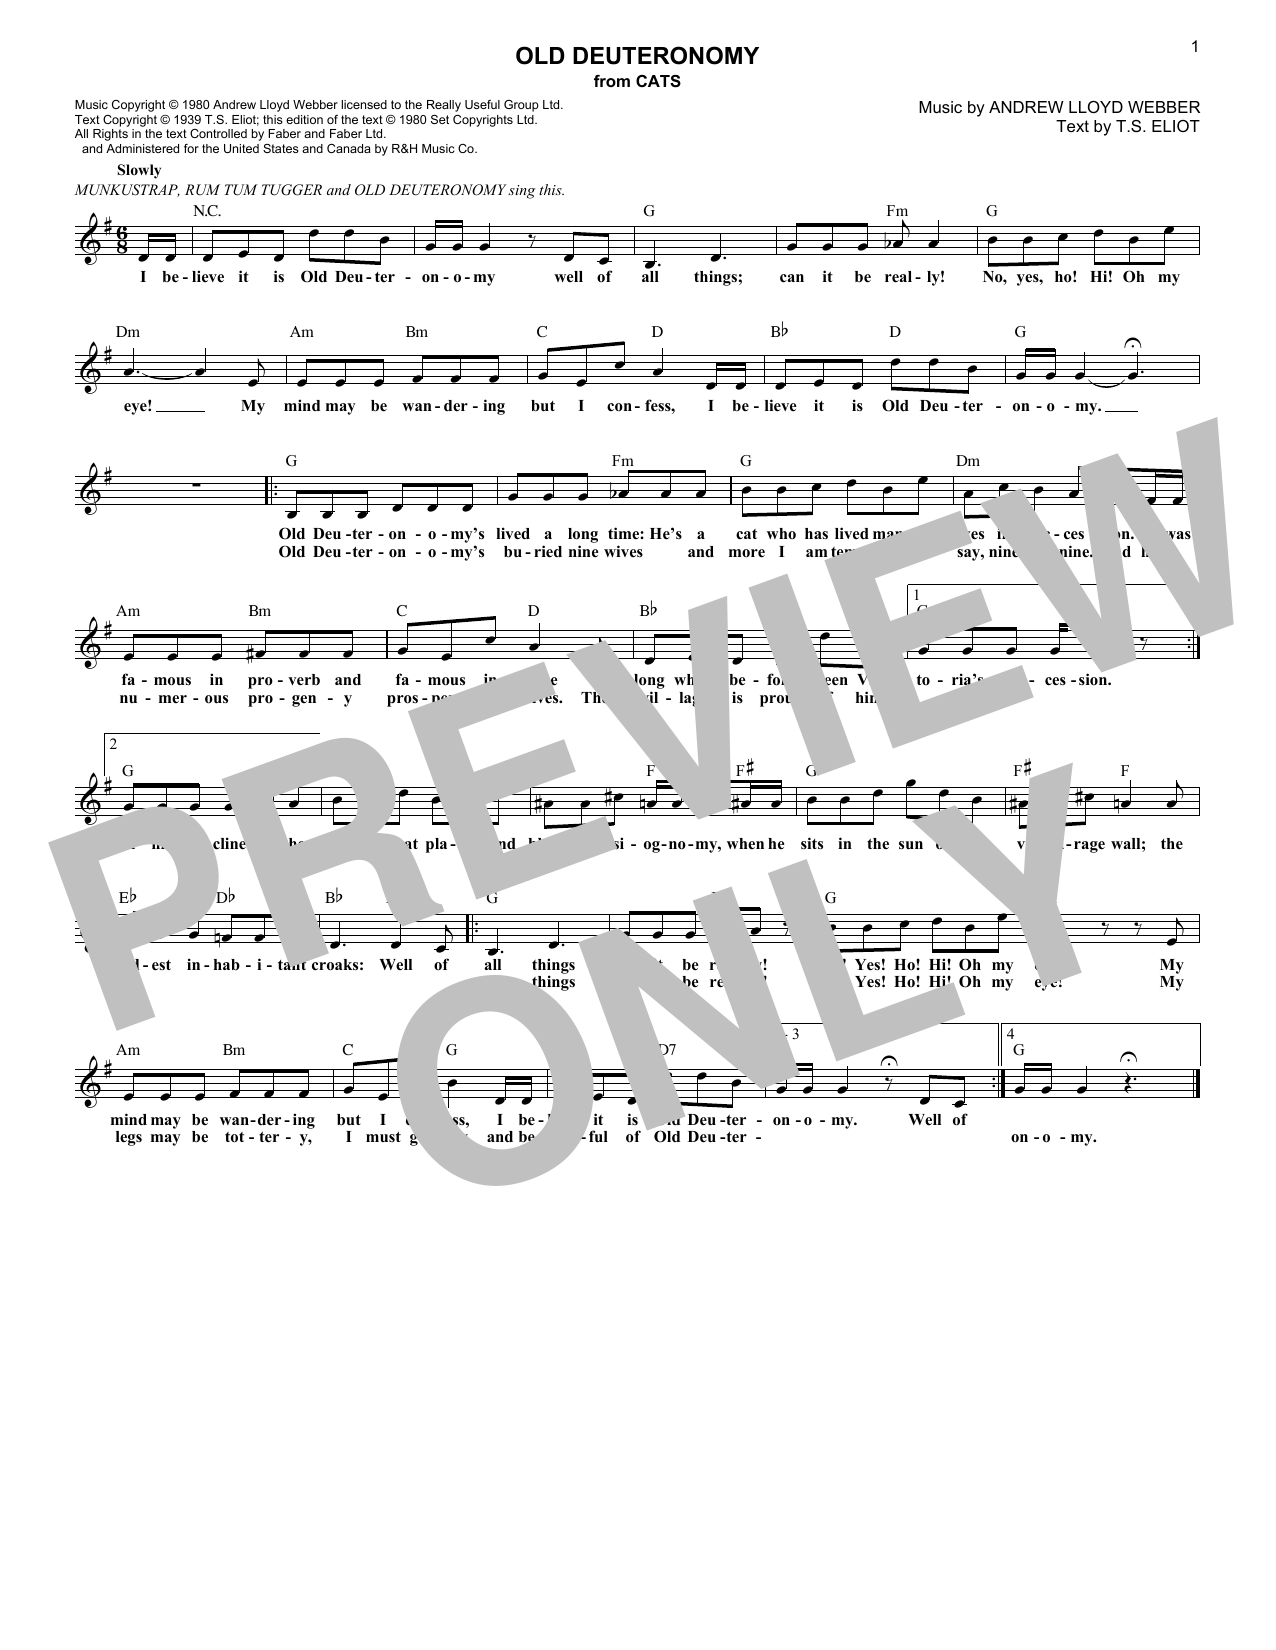 Andrew Lloyd Webber Old Deuteronomy (from Cats) sheet music notes and chords